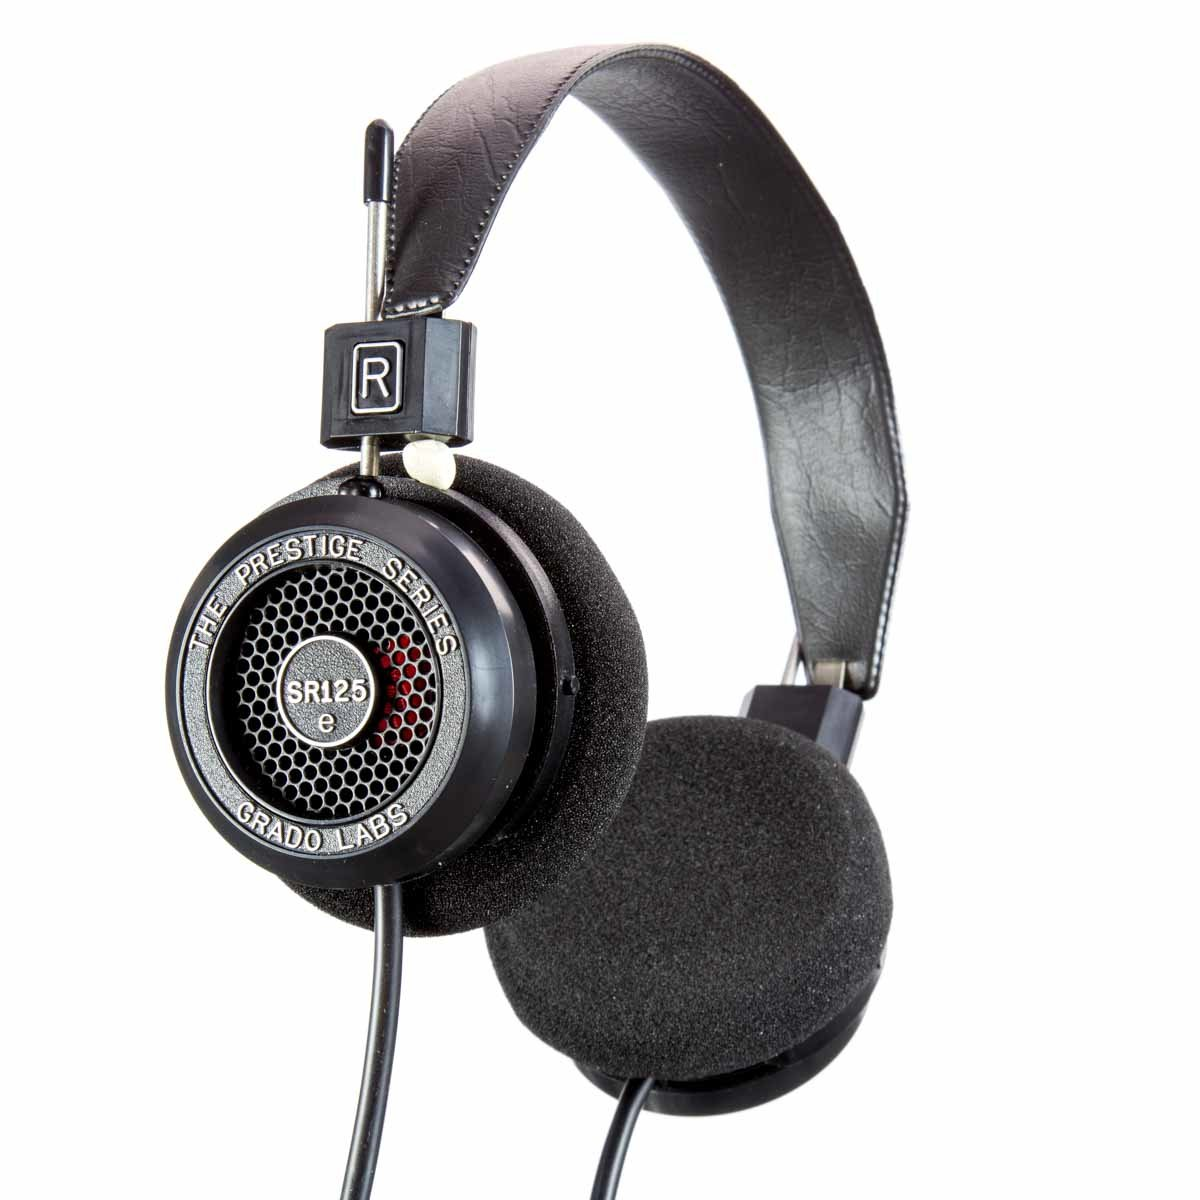 Grado Prestige Series SR125e Headphones by Grado